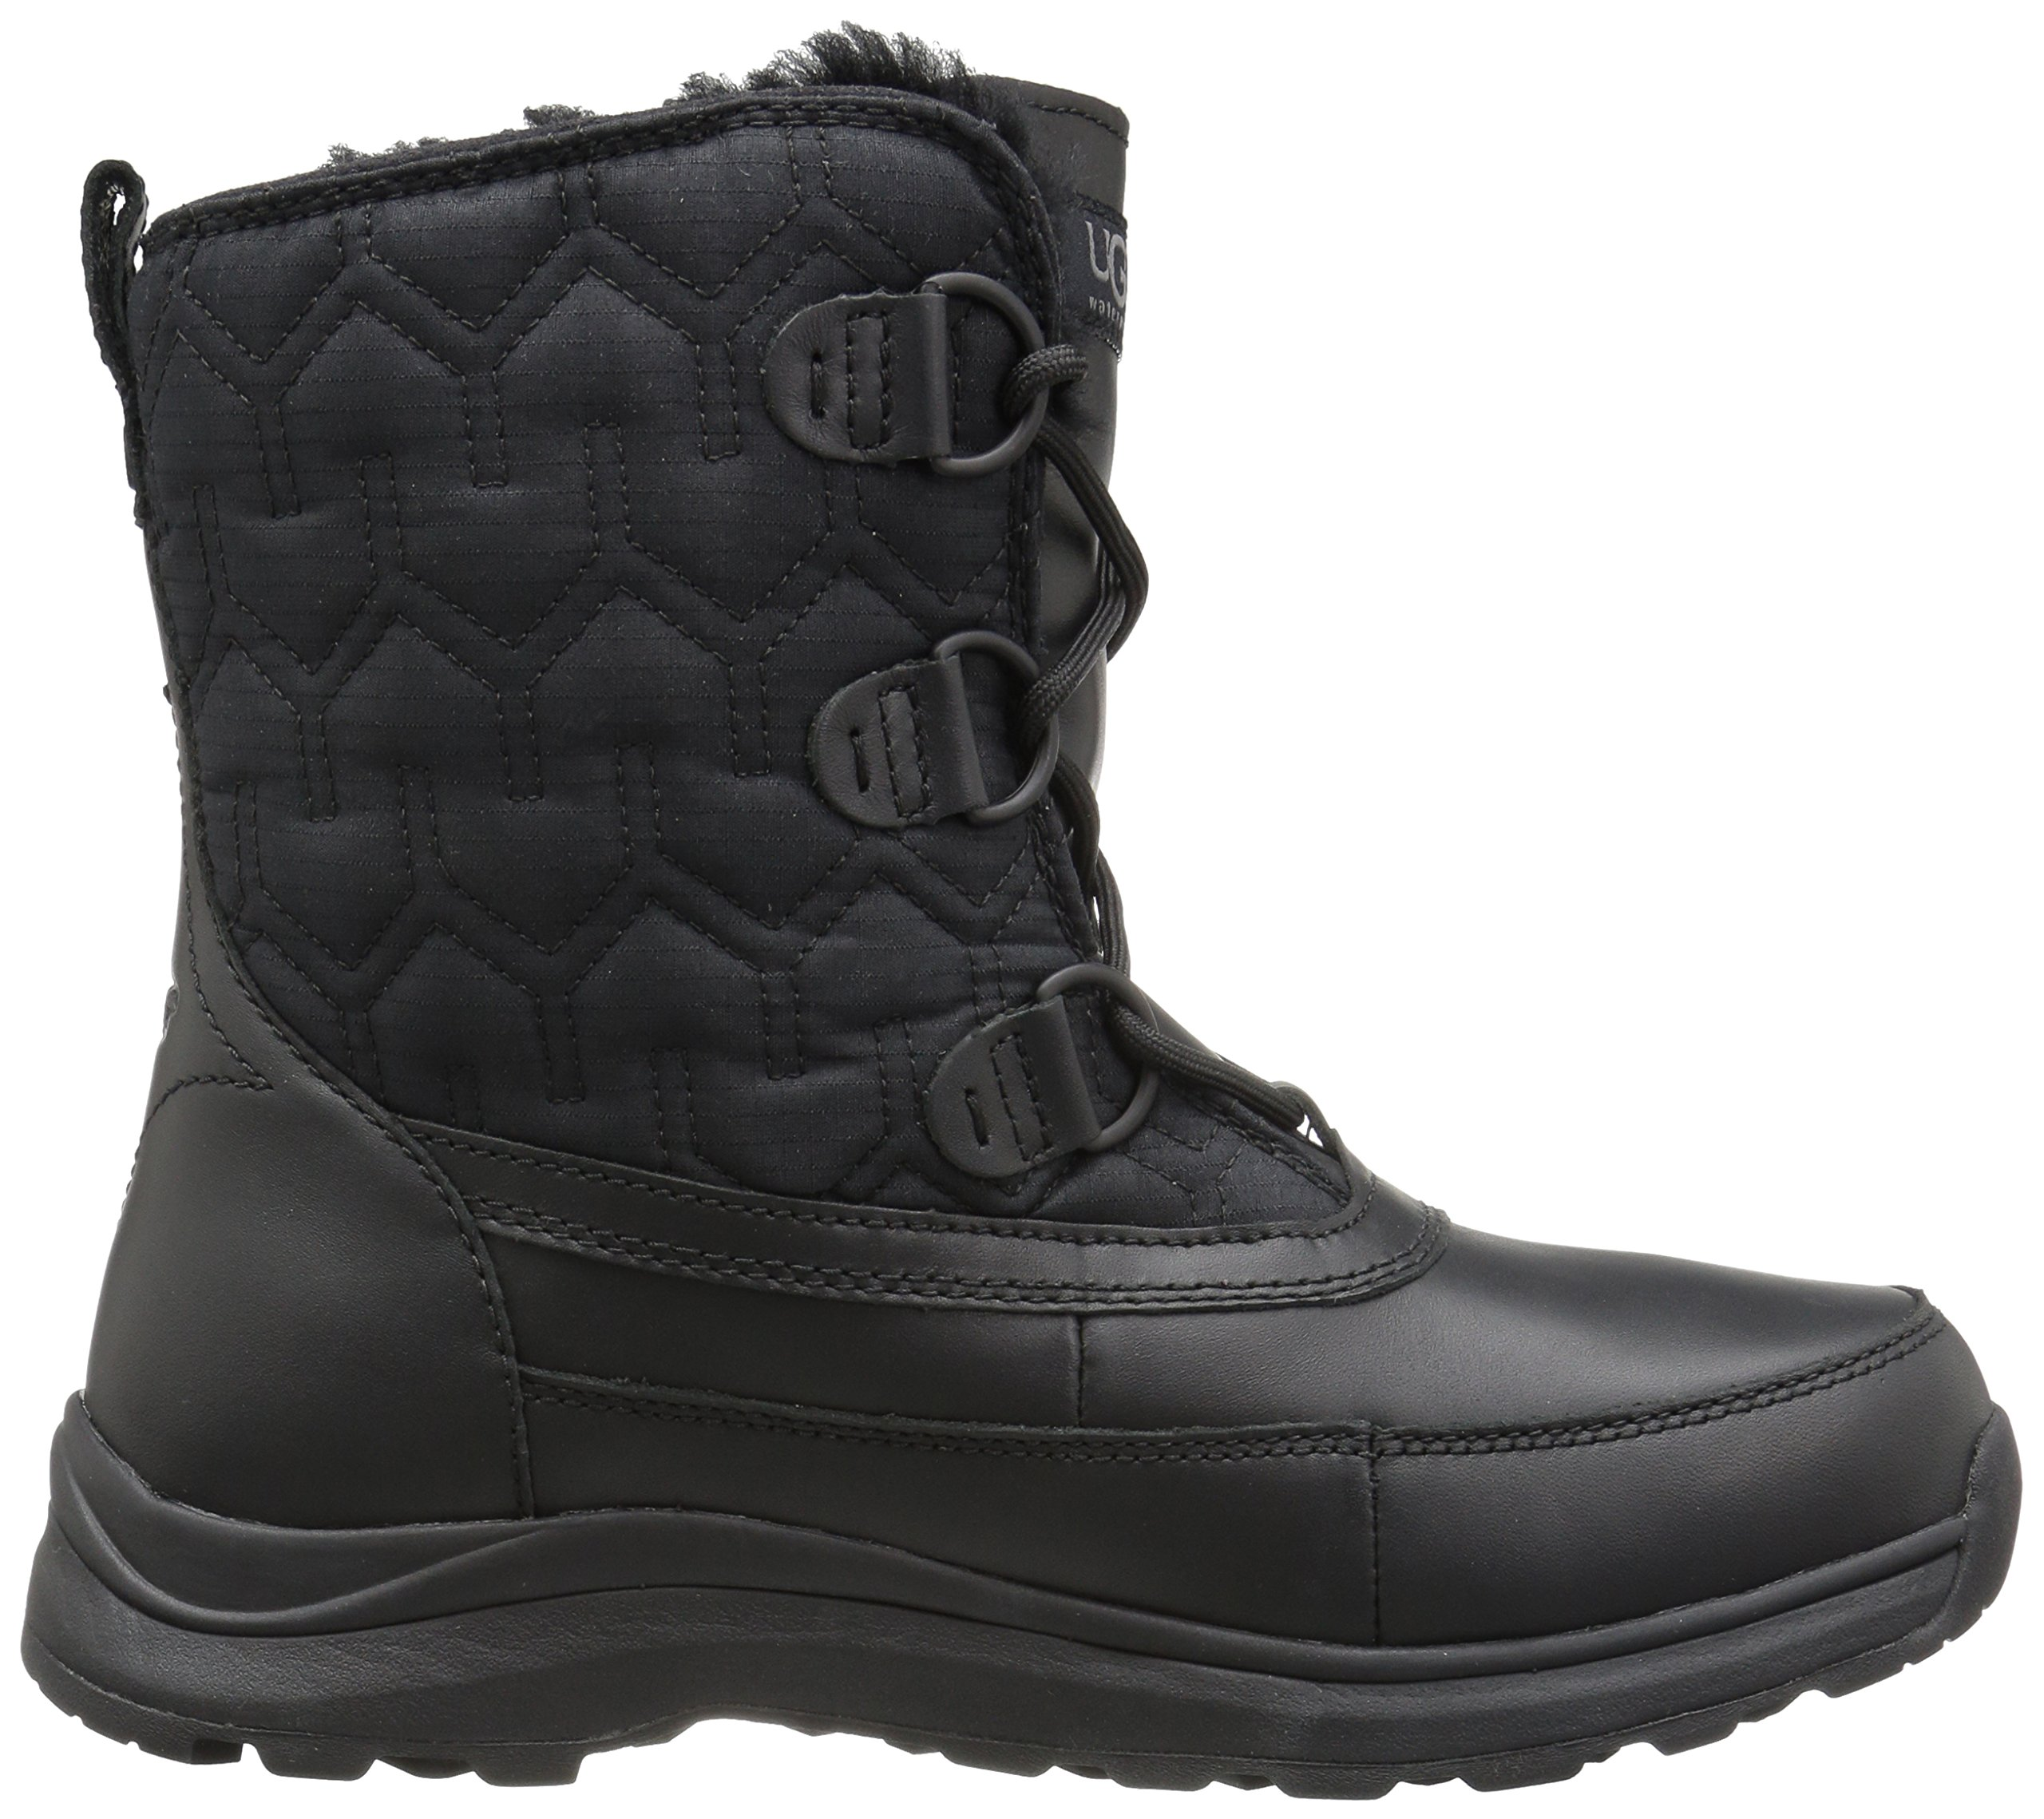 UGG Women's Lachlan Winter Boot, Black, 8 M US by UGG (Image #7)